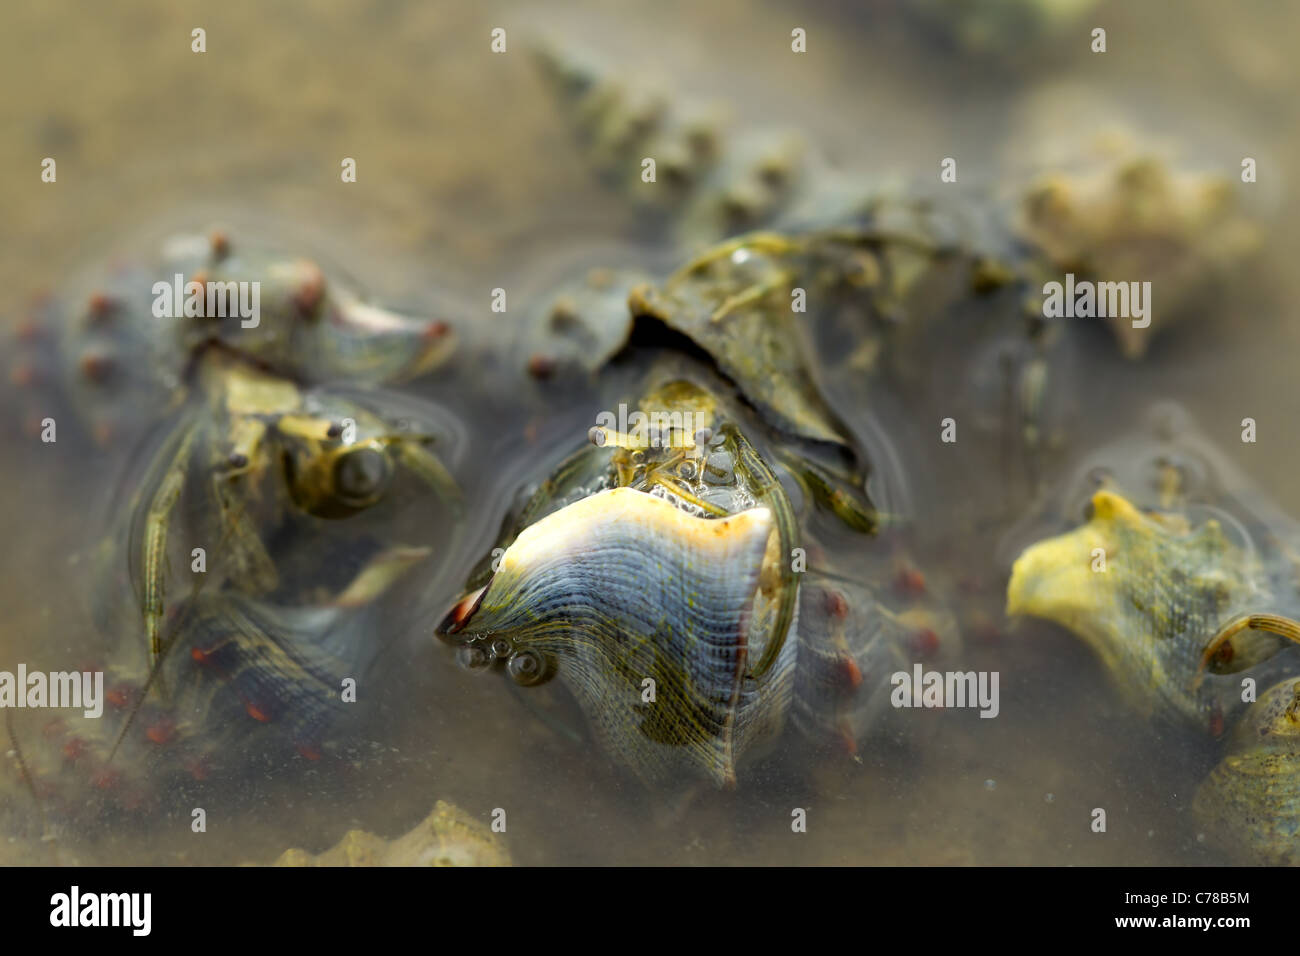 HERMIT CRABS MATING IN SHALLOW WARM WATERS OF PACIFIC COAST - Stock Image